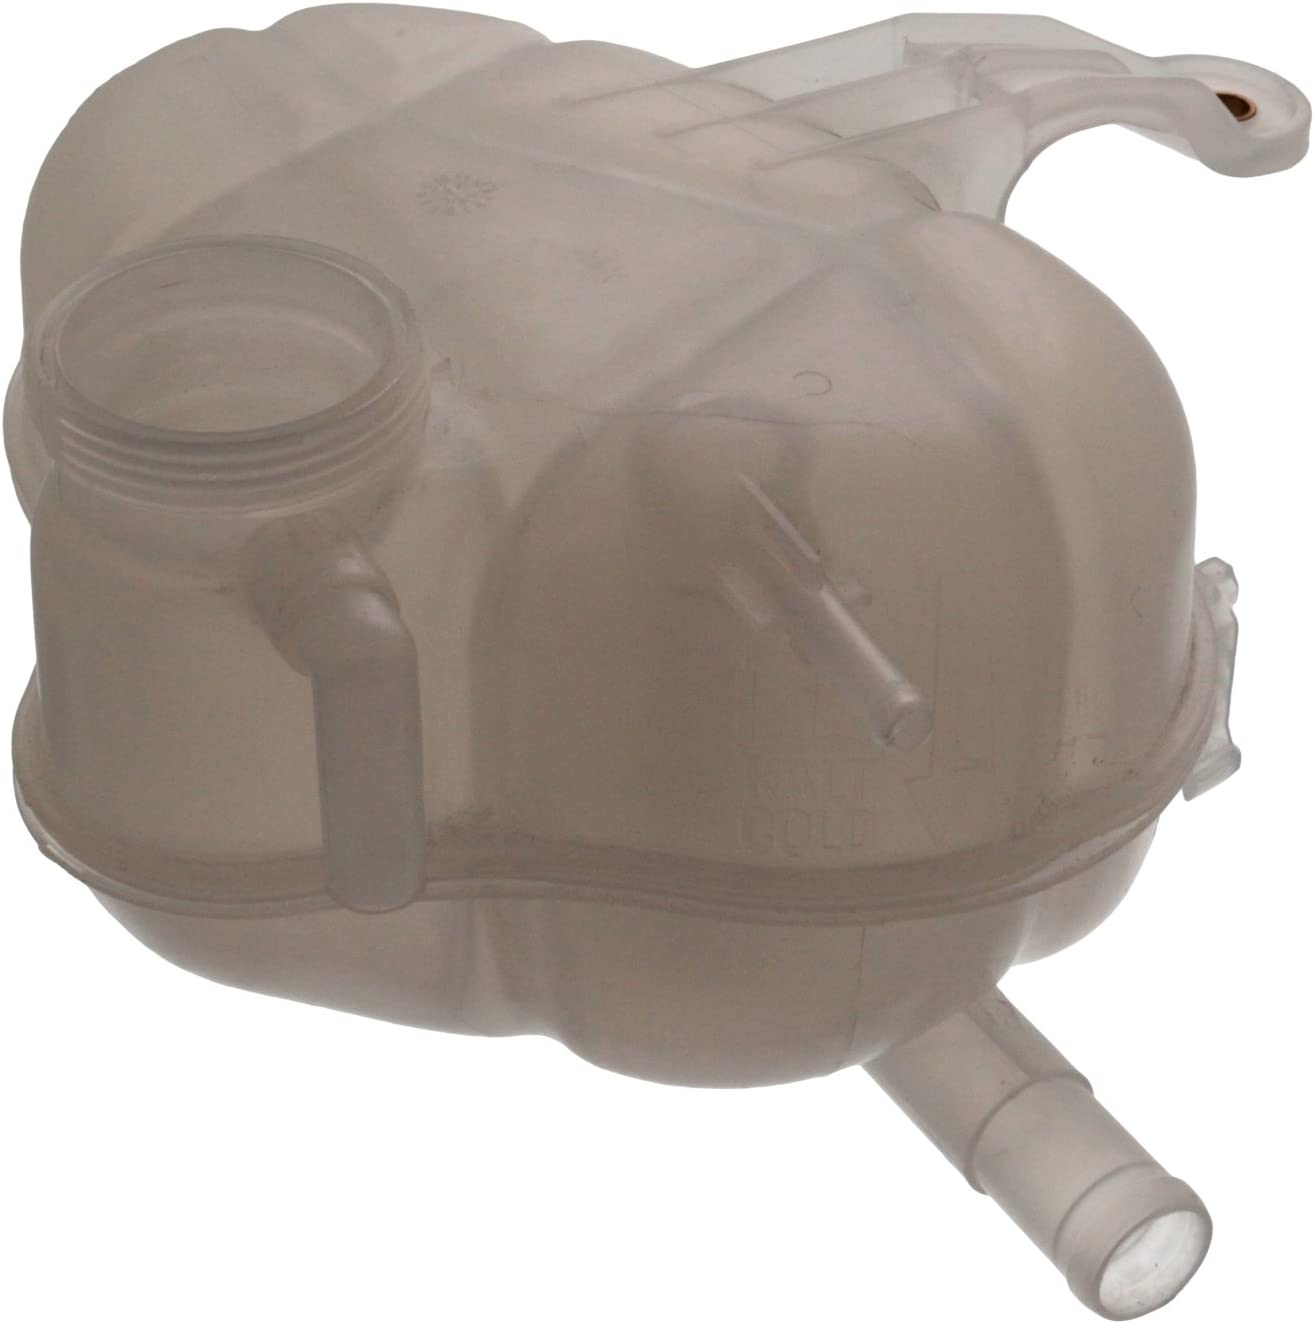 febi bilstein 47905 Coolant Expansion Tank pack of one